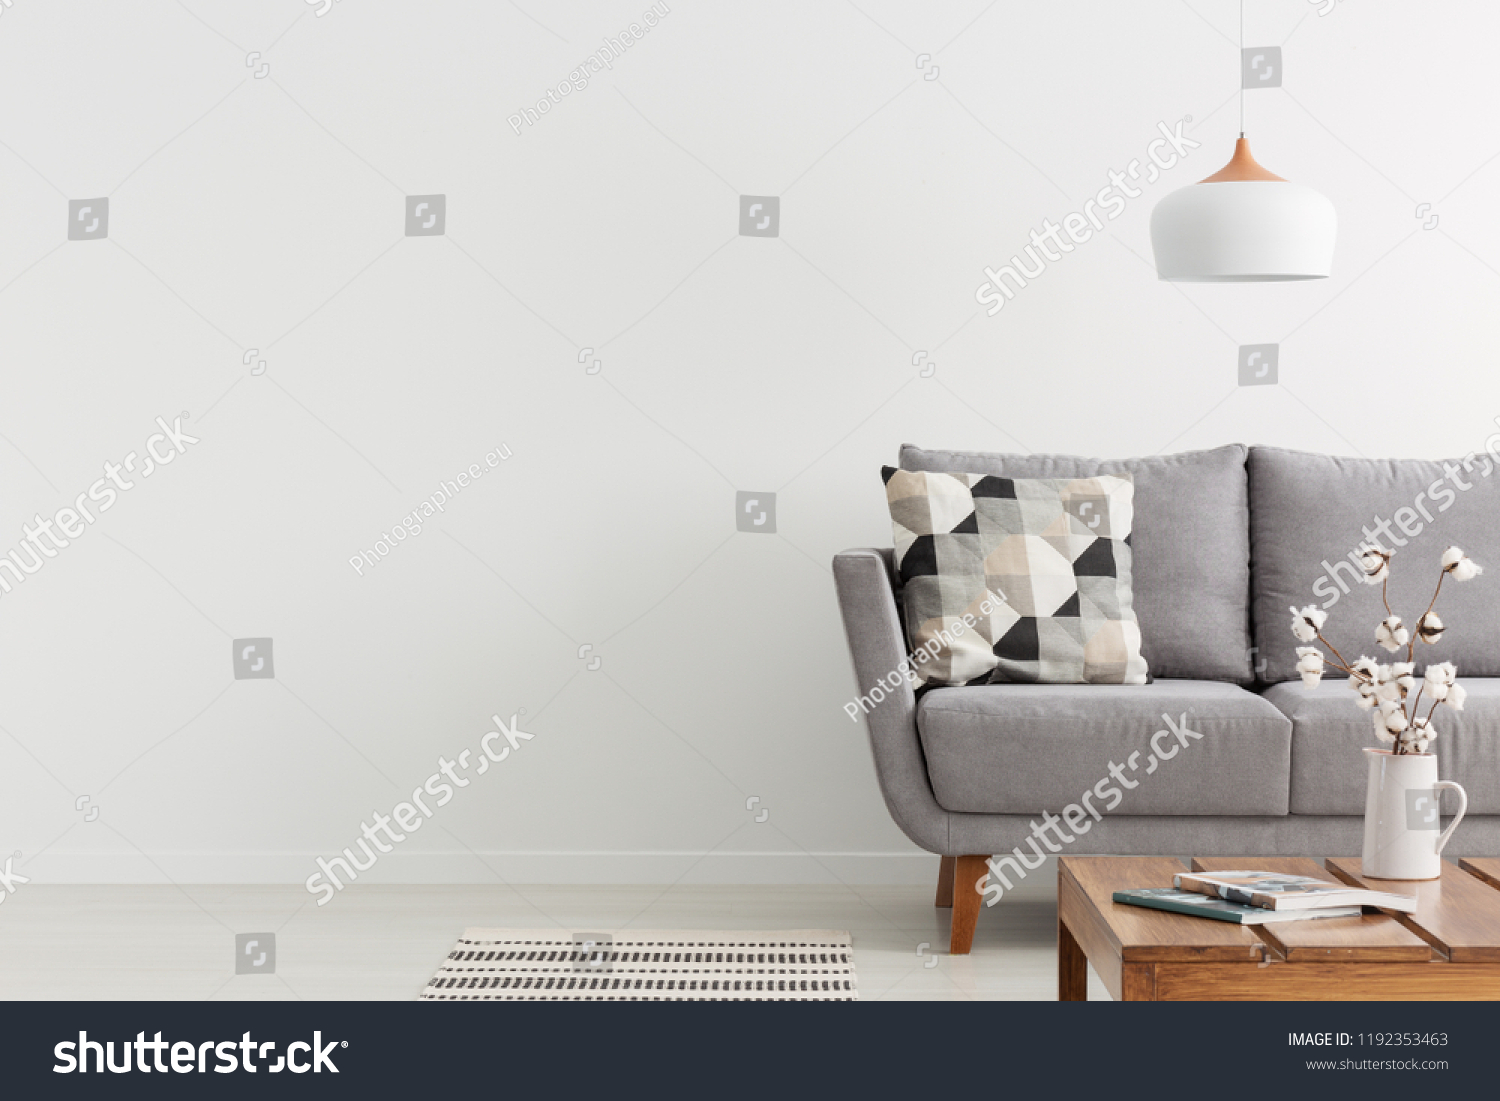 Flowers on wooden table and grey settee in white living room interior with copy space. Real photo #1192353463